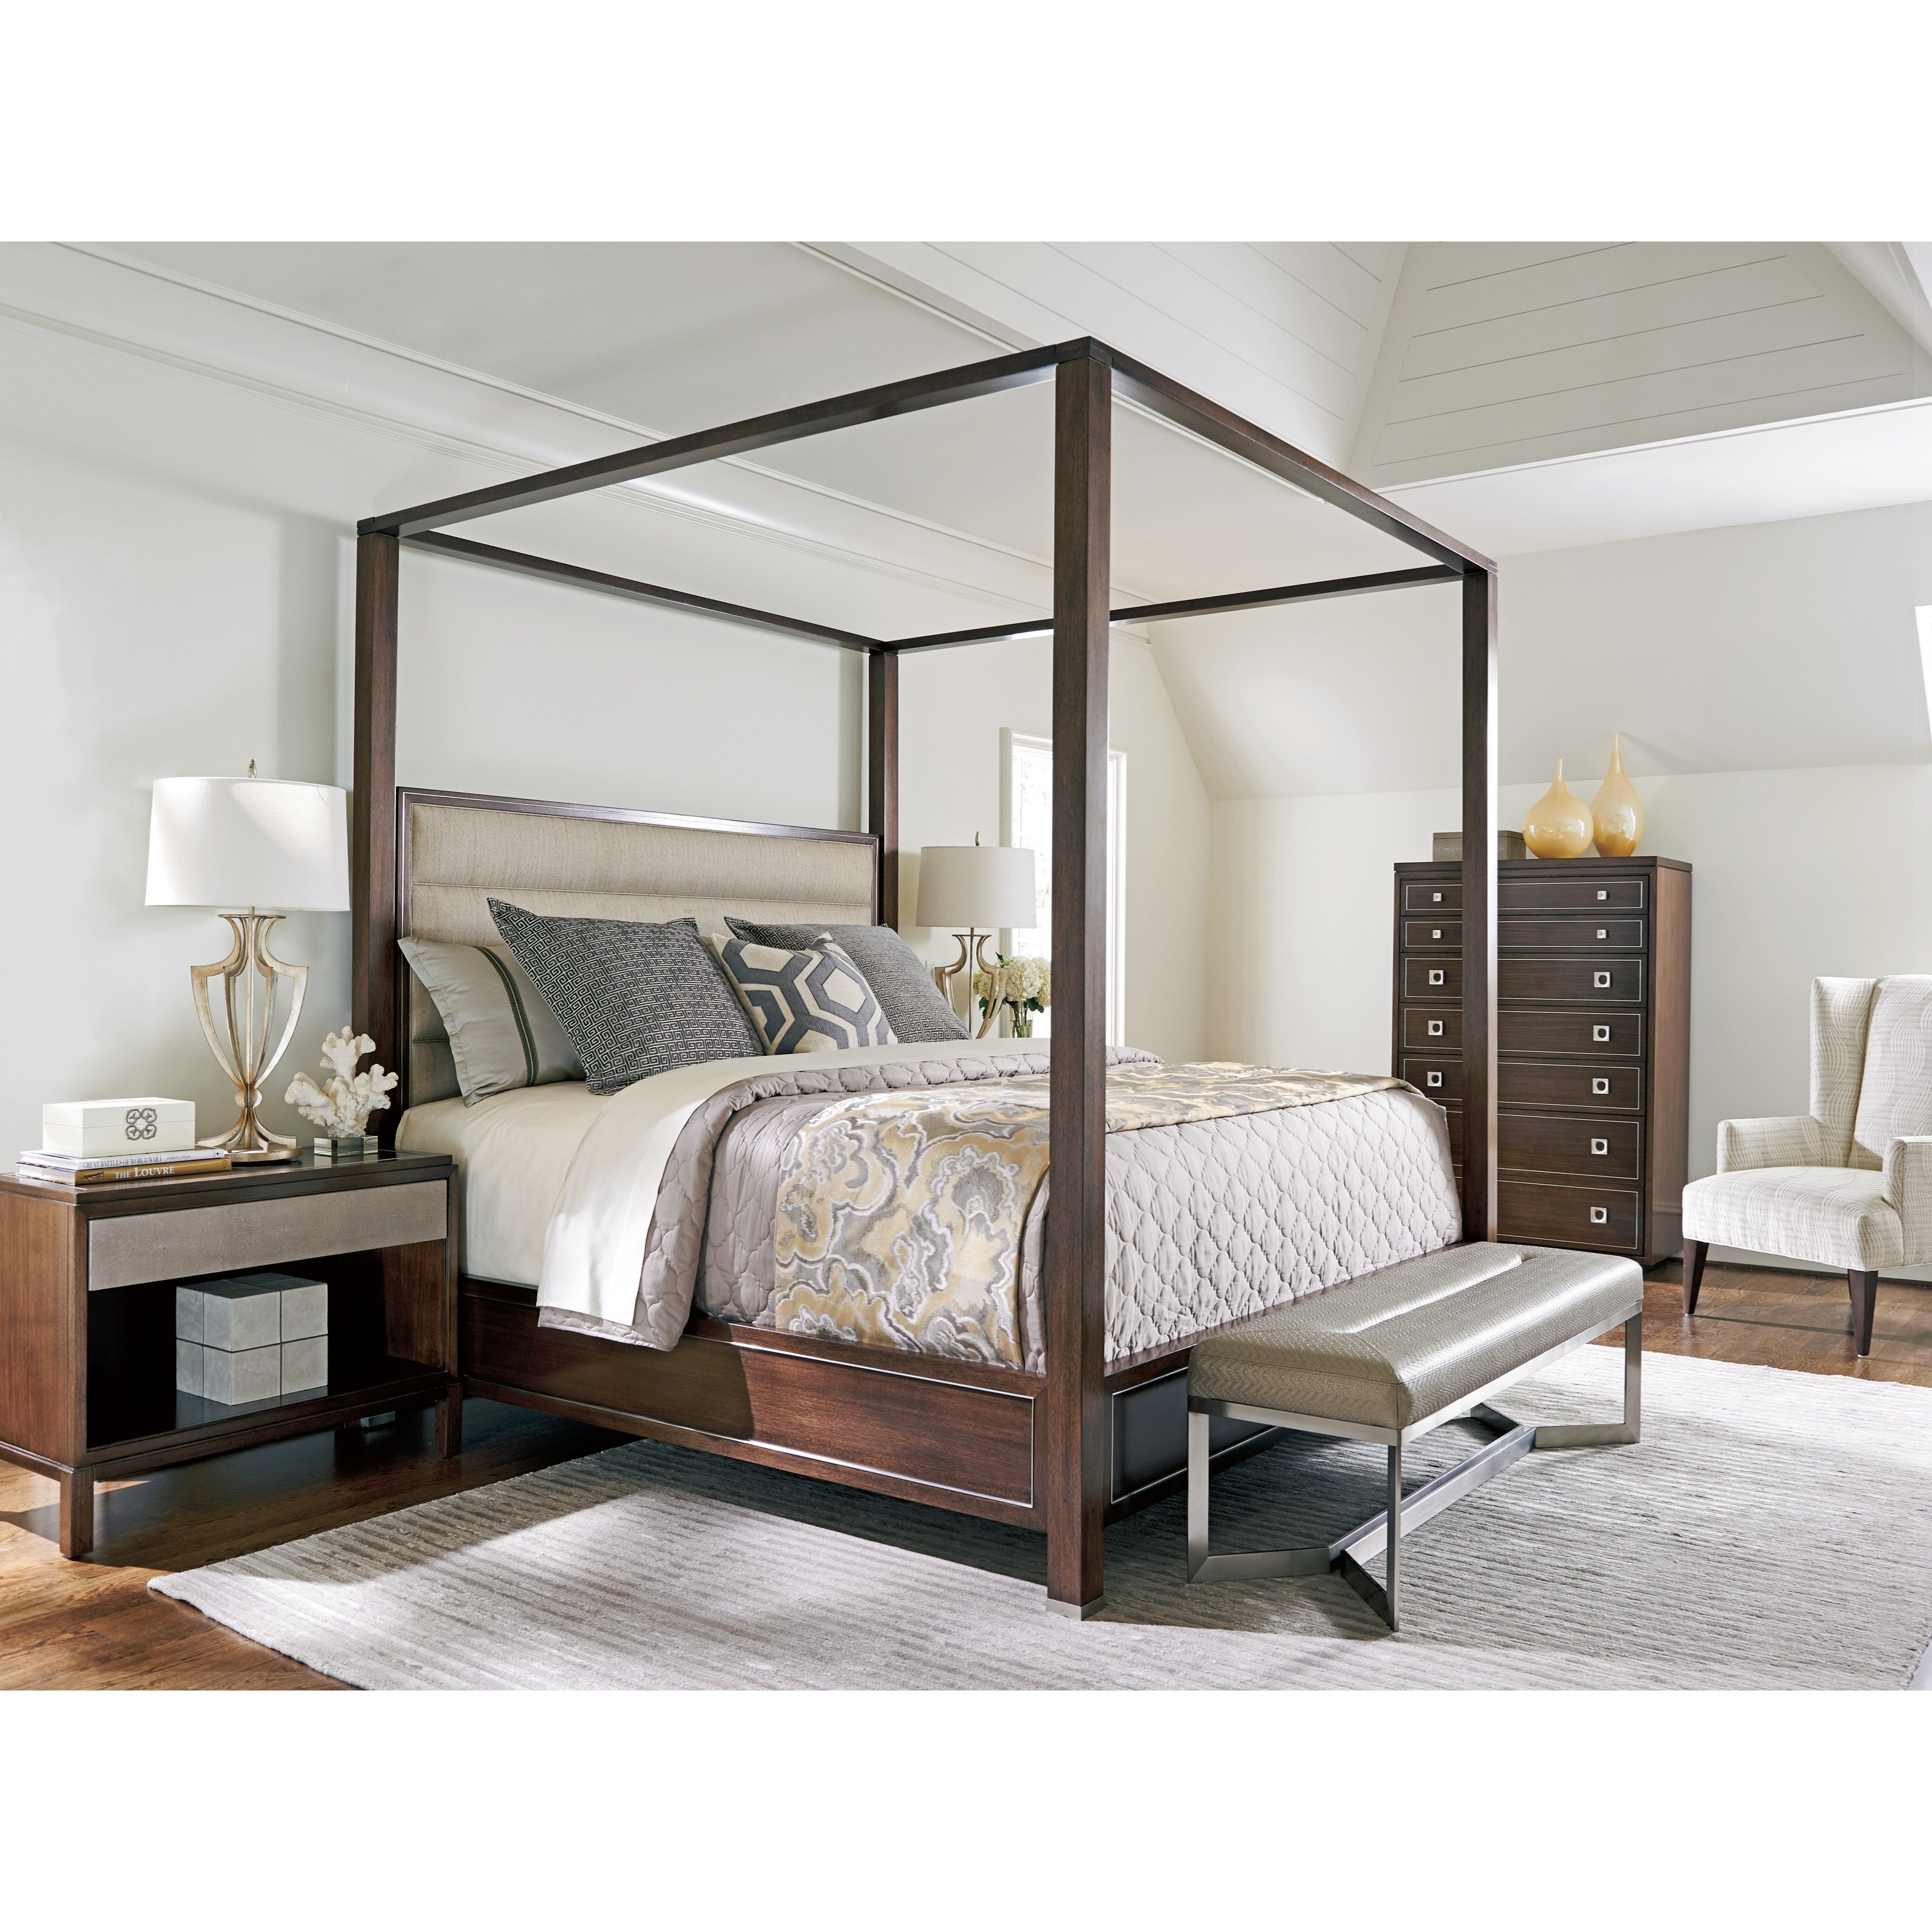 MacArthur Park Queen Bedroom Group by Lexington at Sprintz Furniture